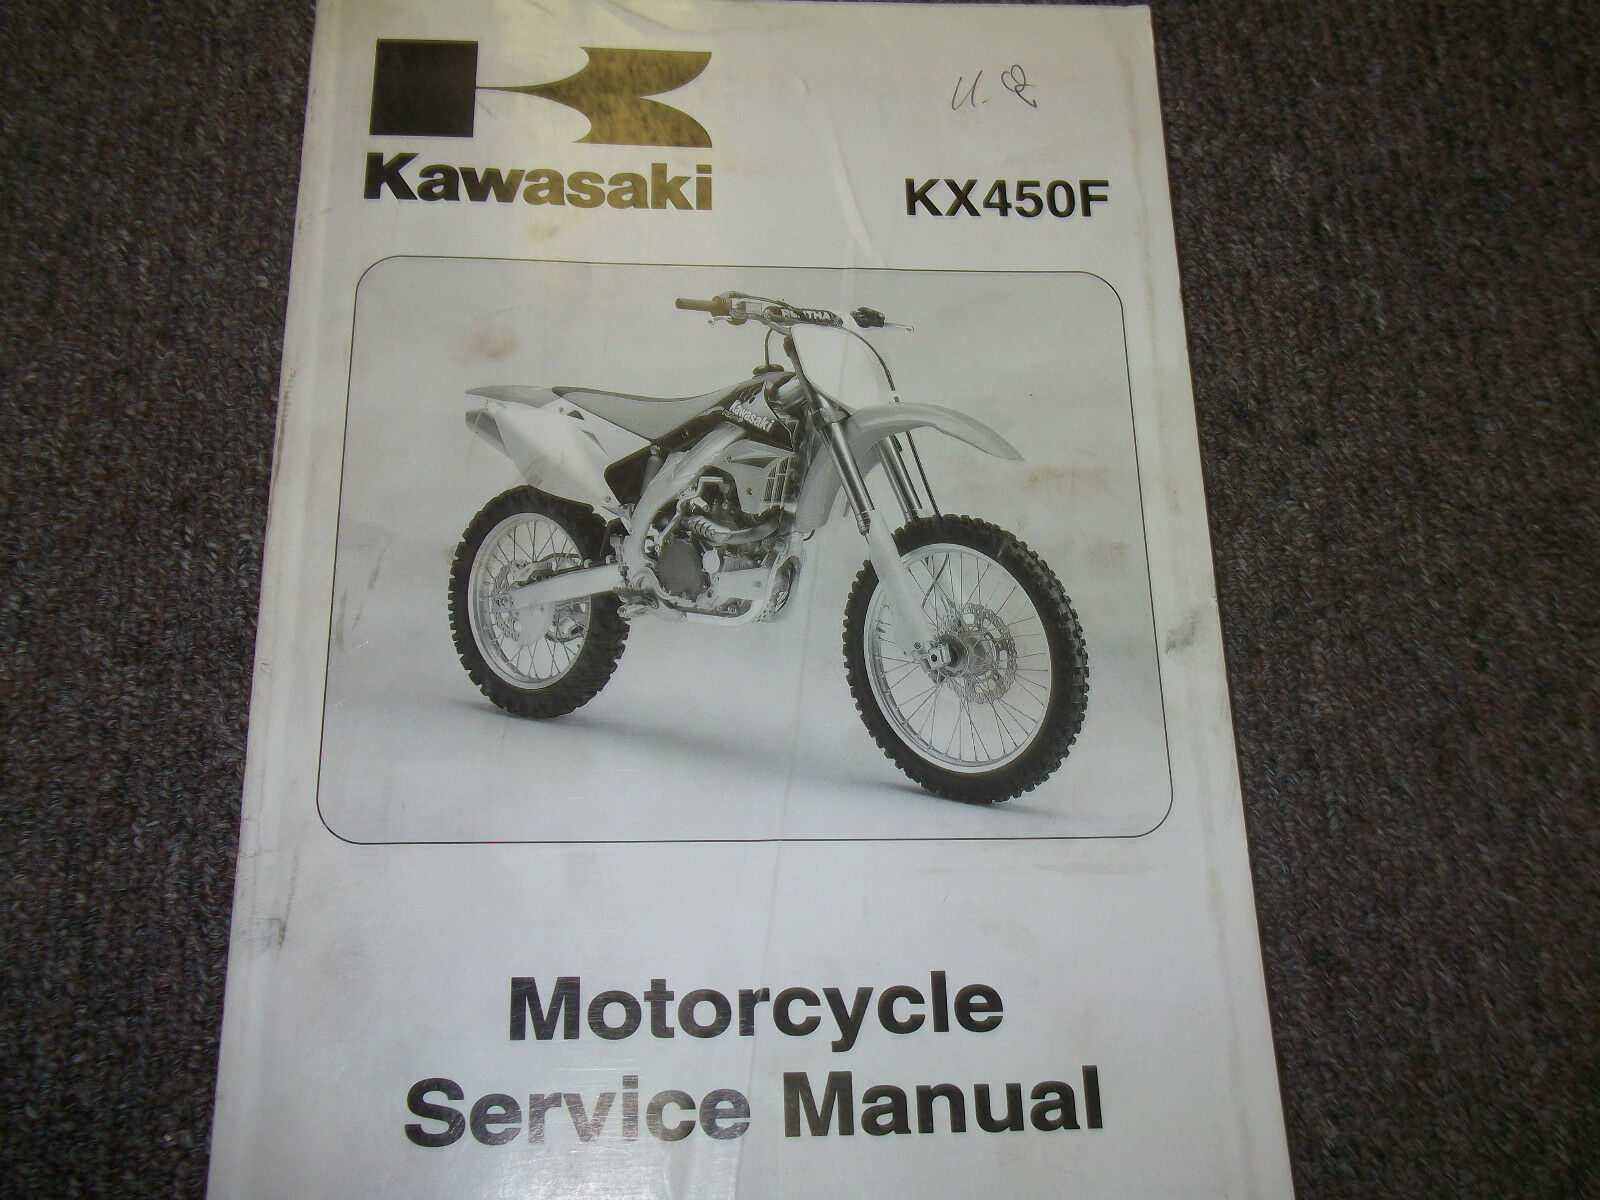 2006 06 Kawasaki KX450F KX 450 F KX450 MOTORCYCLE Service Repair Shop Manual  x 1 of 4Only 1 available See More